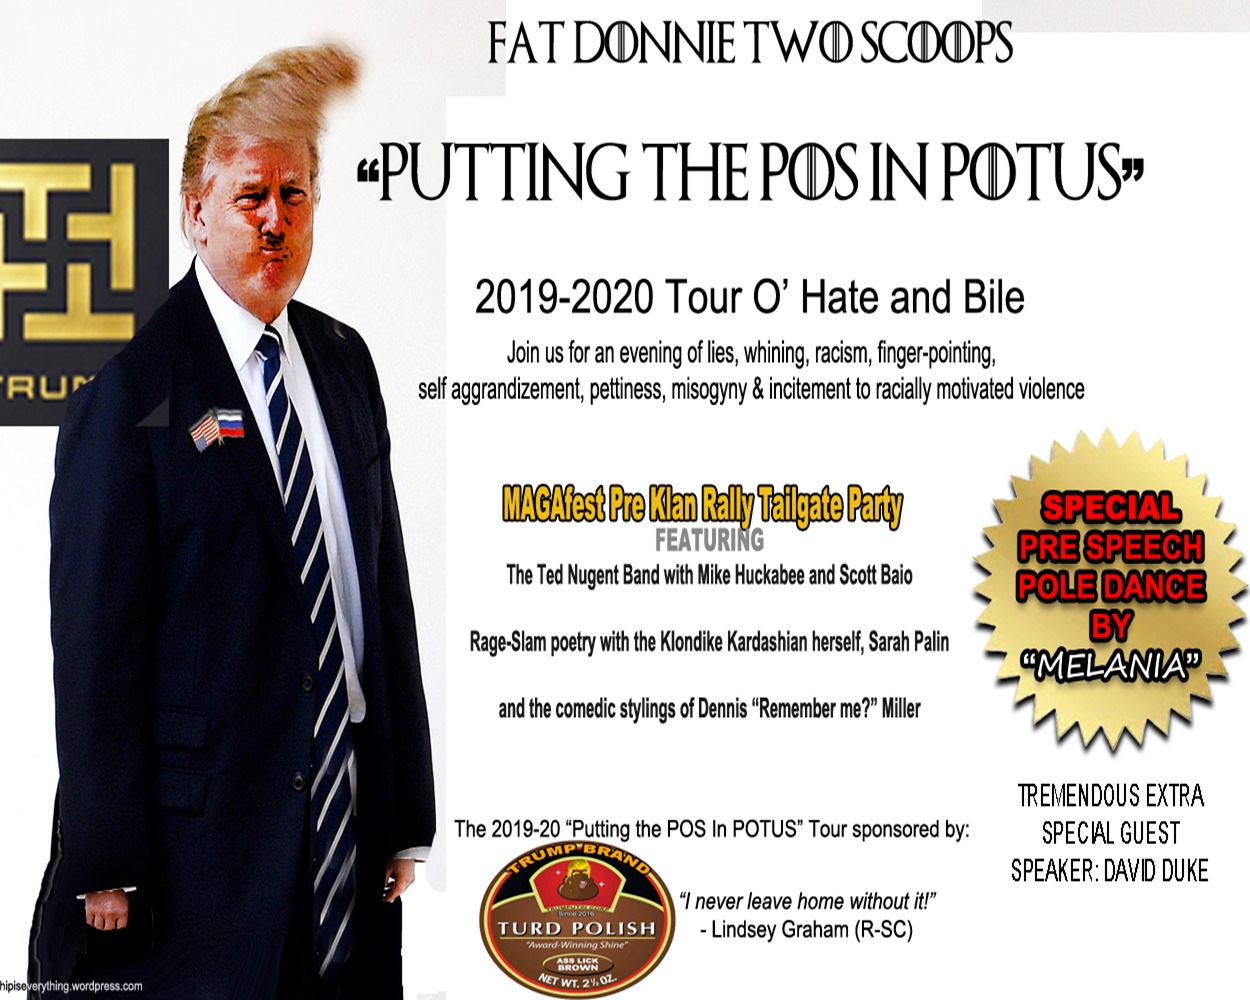 """Fat Donnie Bad Touch - """"Putting the POS in POTUS Daily!"""""""